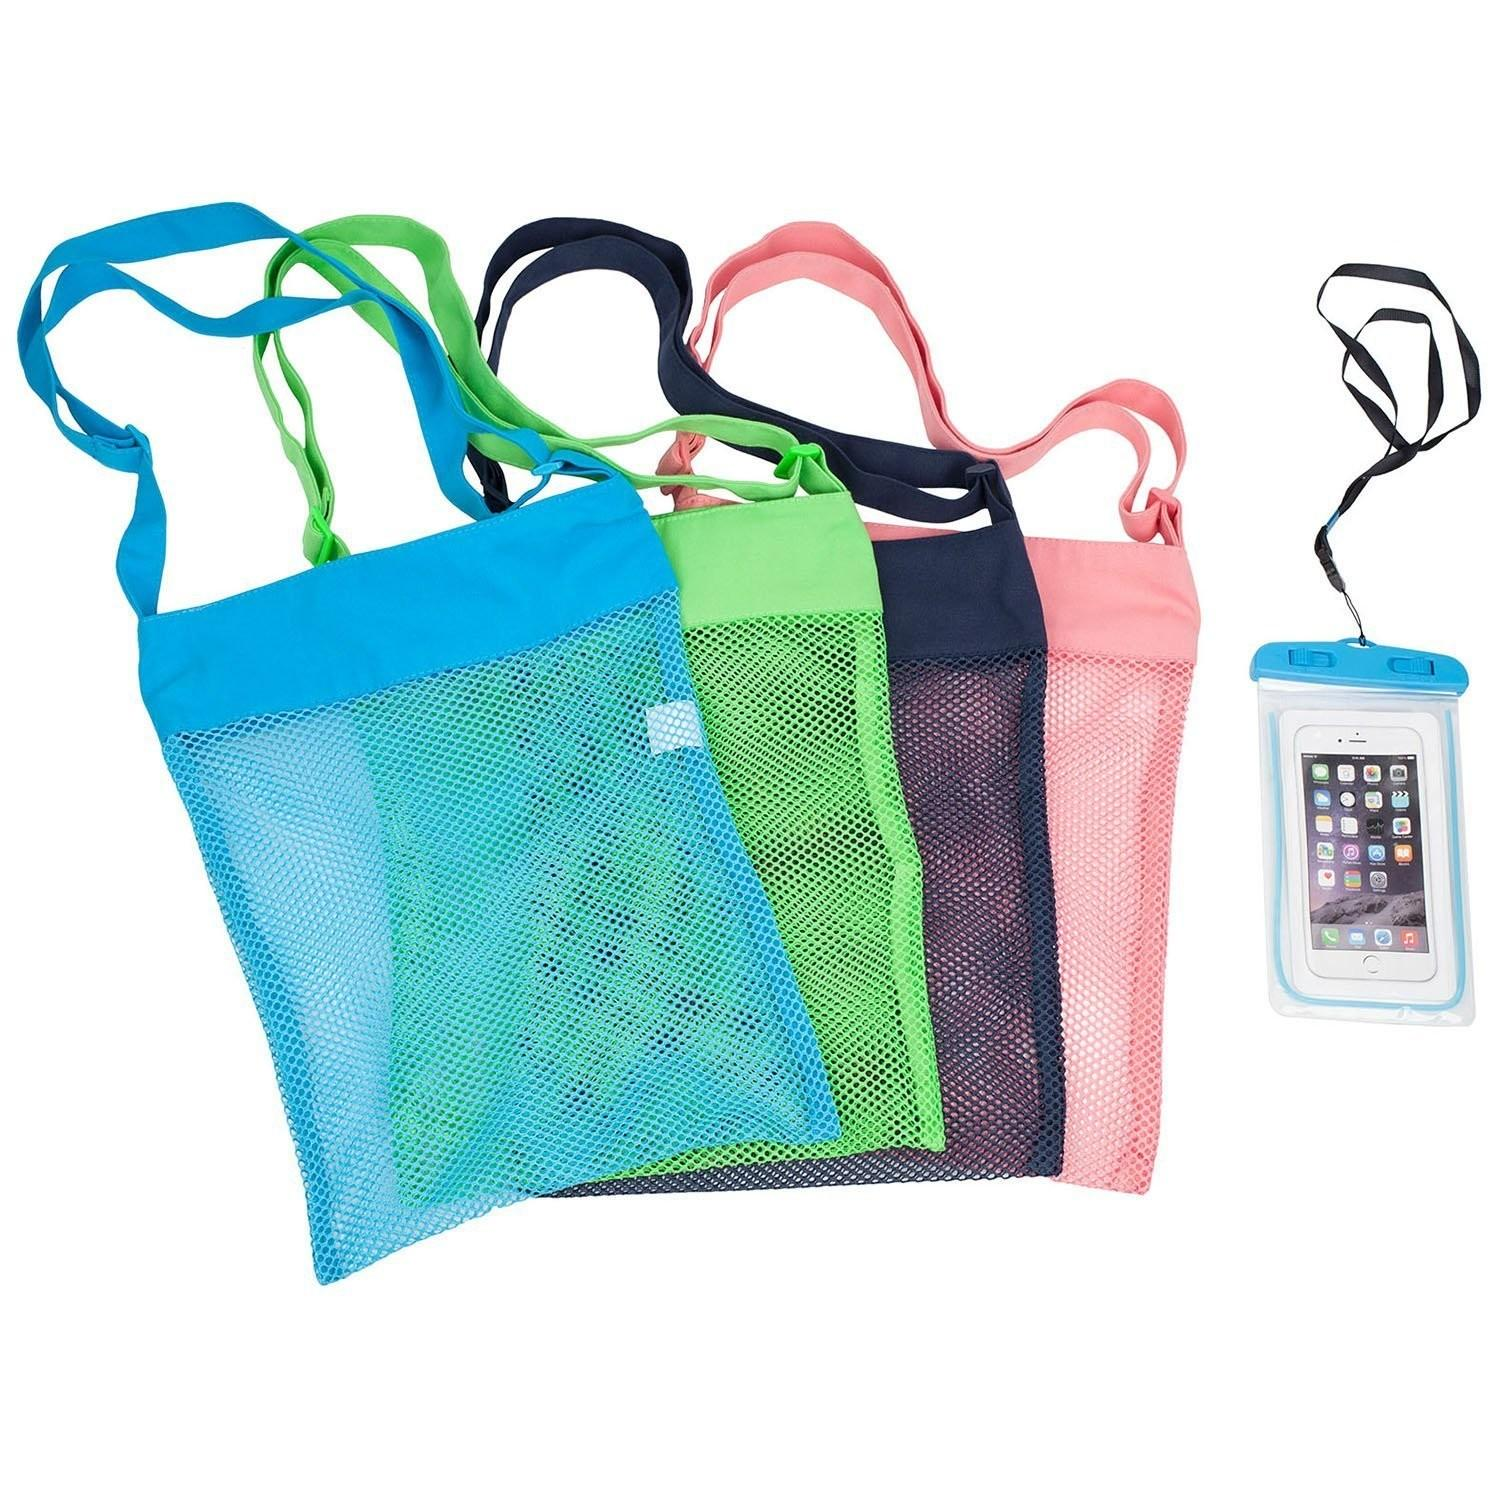 Colorful Mesh Beach Bags Pack Large Seashell Tote